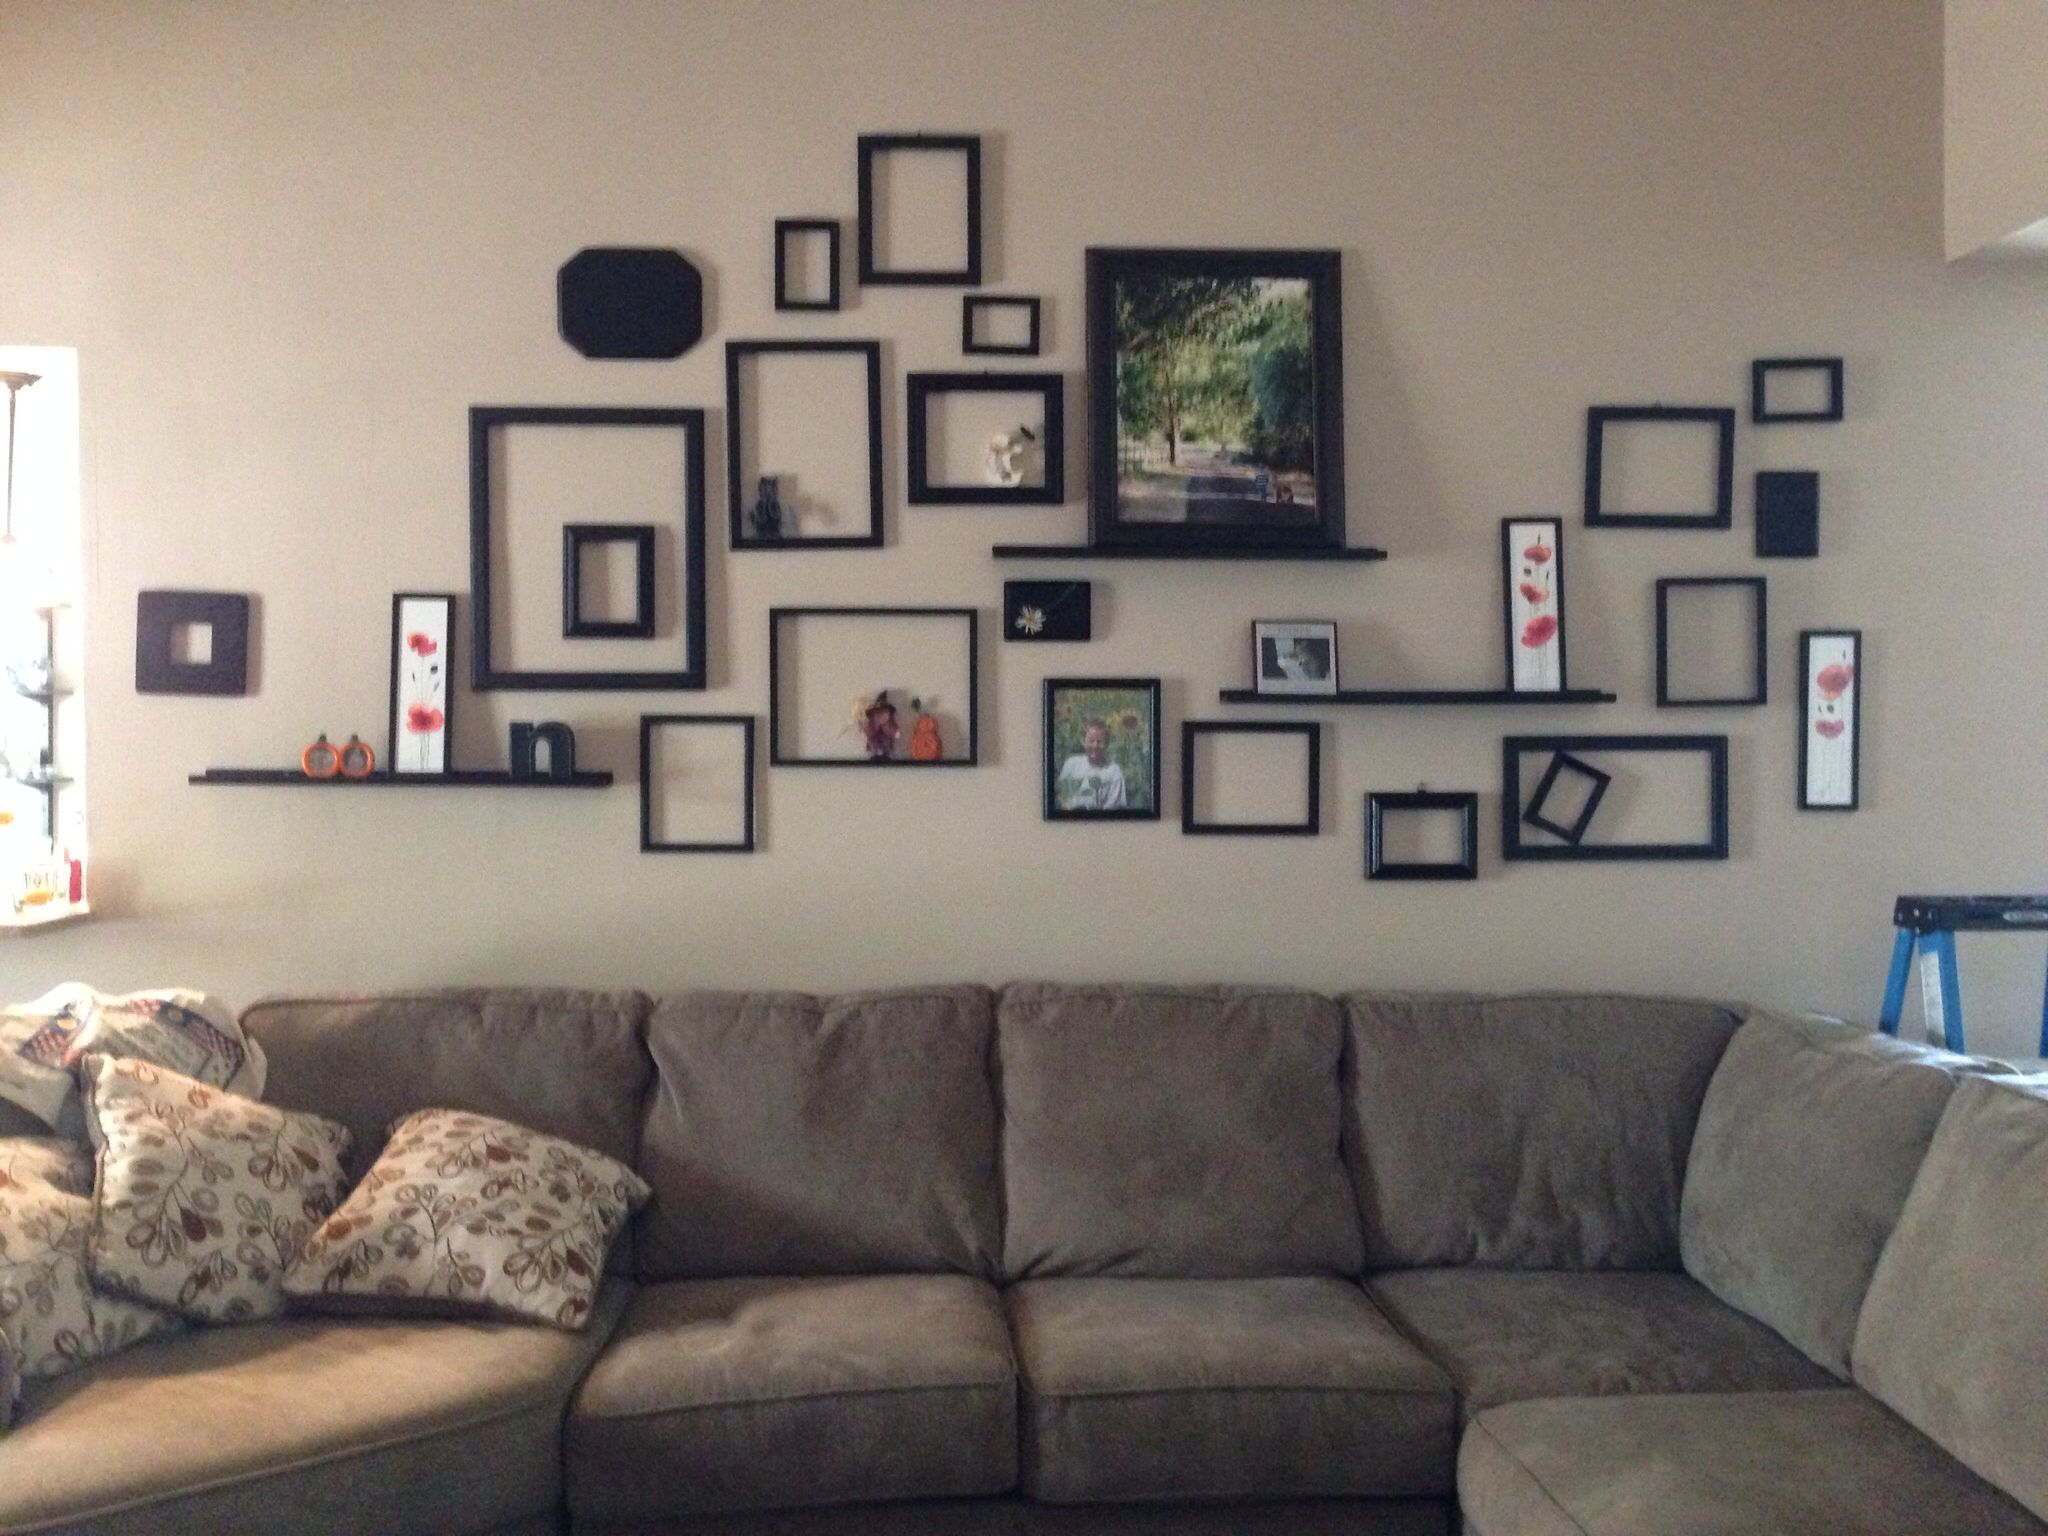 Bedroom wall decorating ideas picture frames - Empty Frame Collage